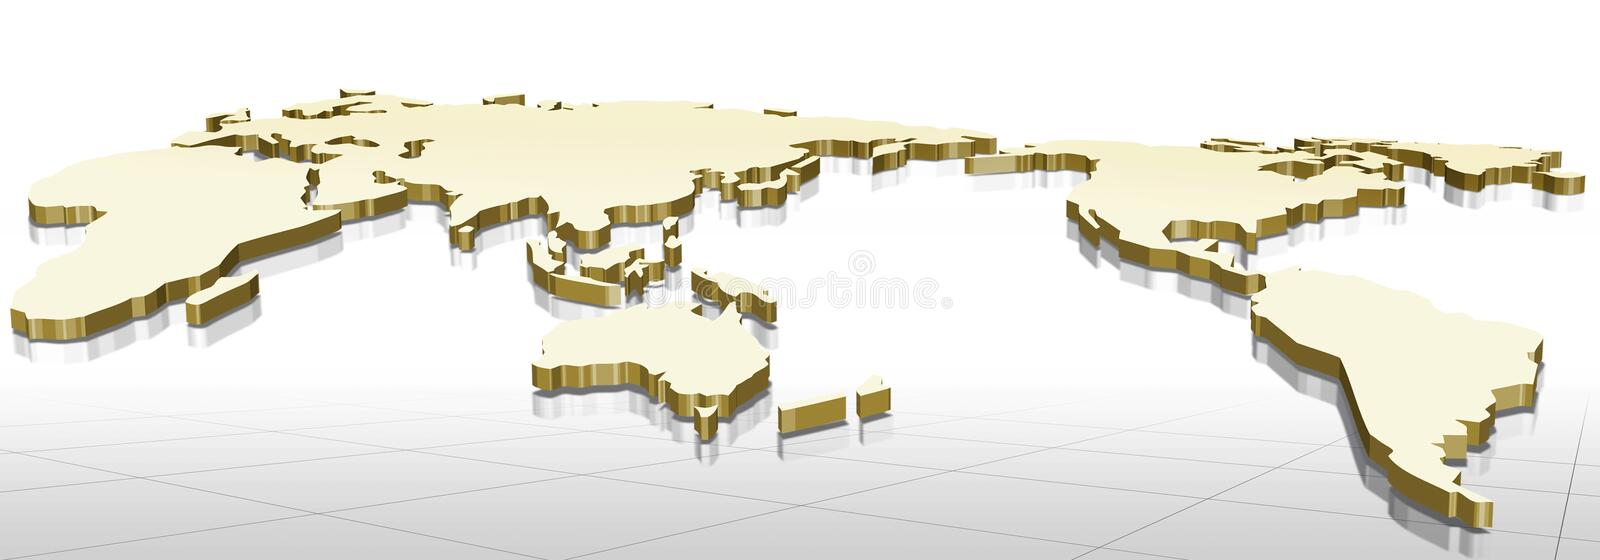 3d map royalty free illustration